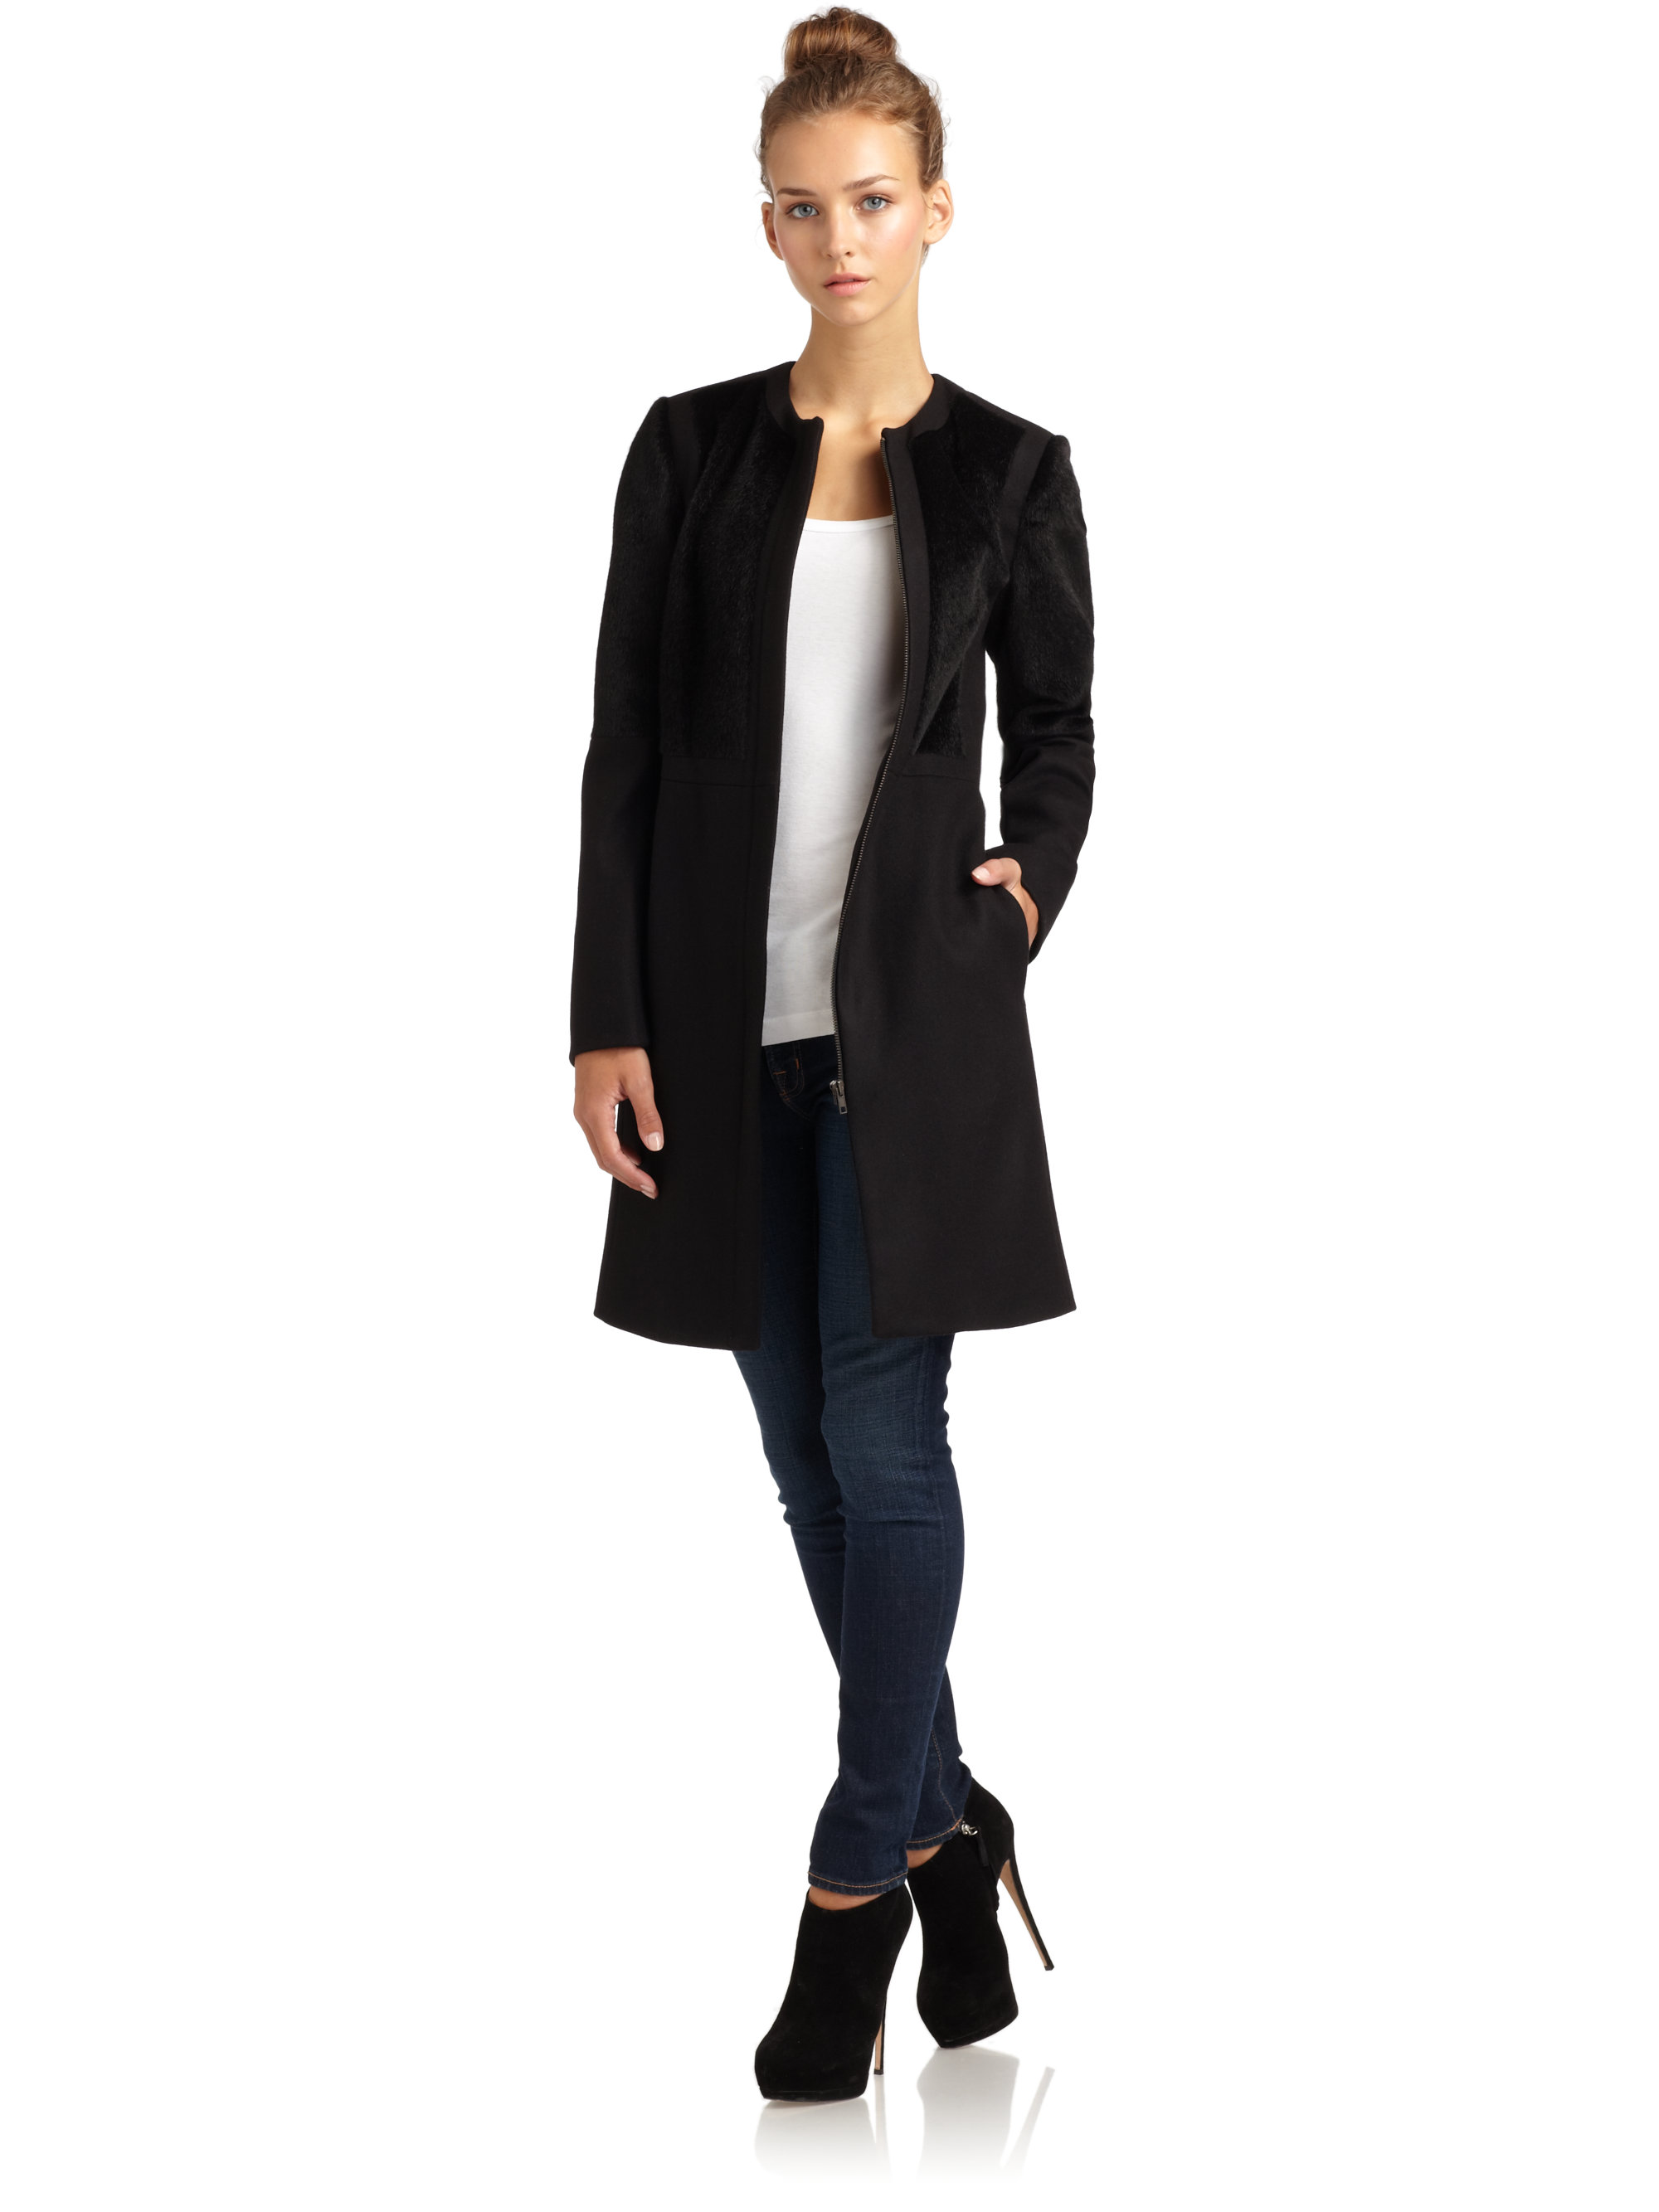 french connection smooth groove faux fur zip coat in black lyst #2: french connection black smooth groove faux fur zip coat product 1